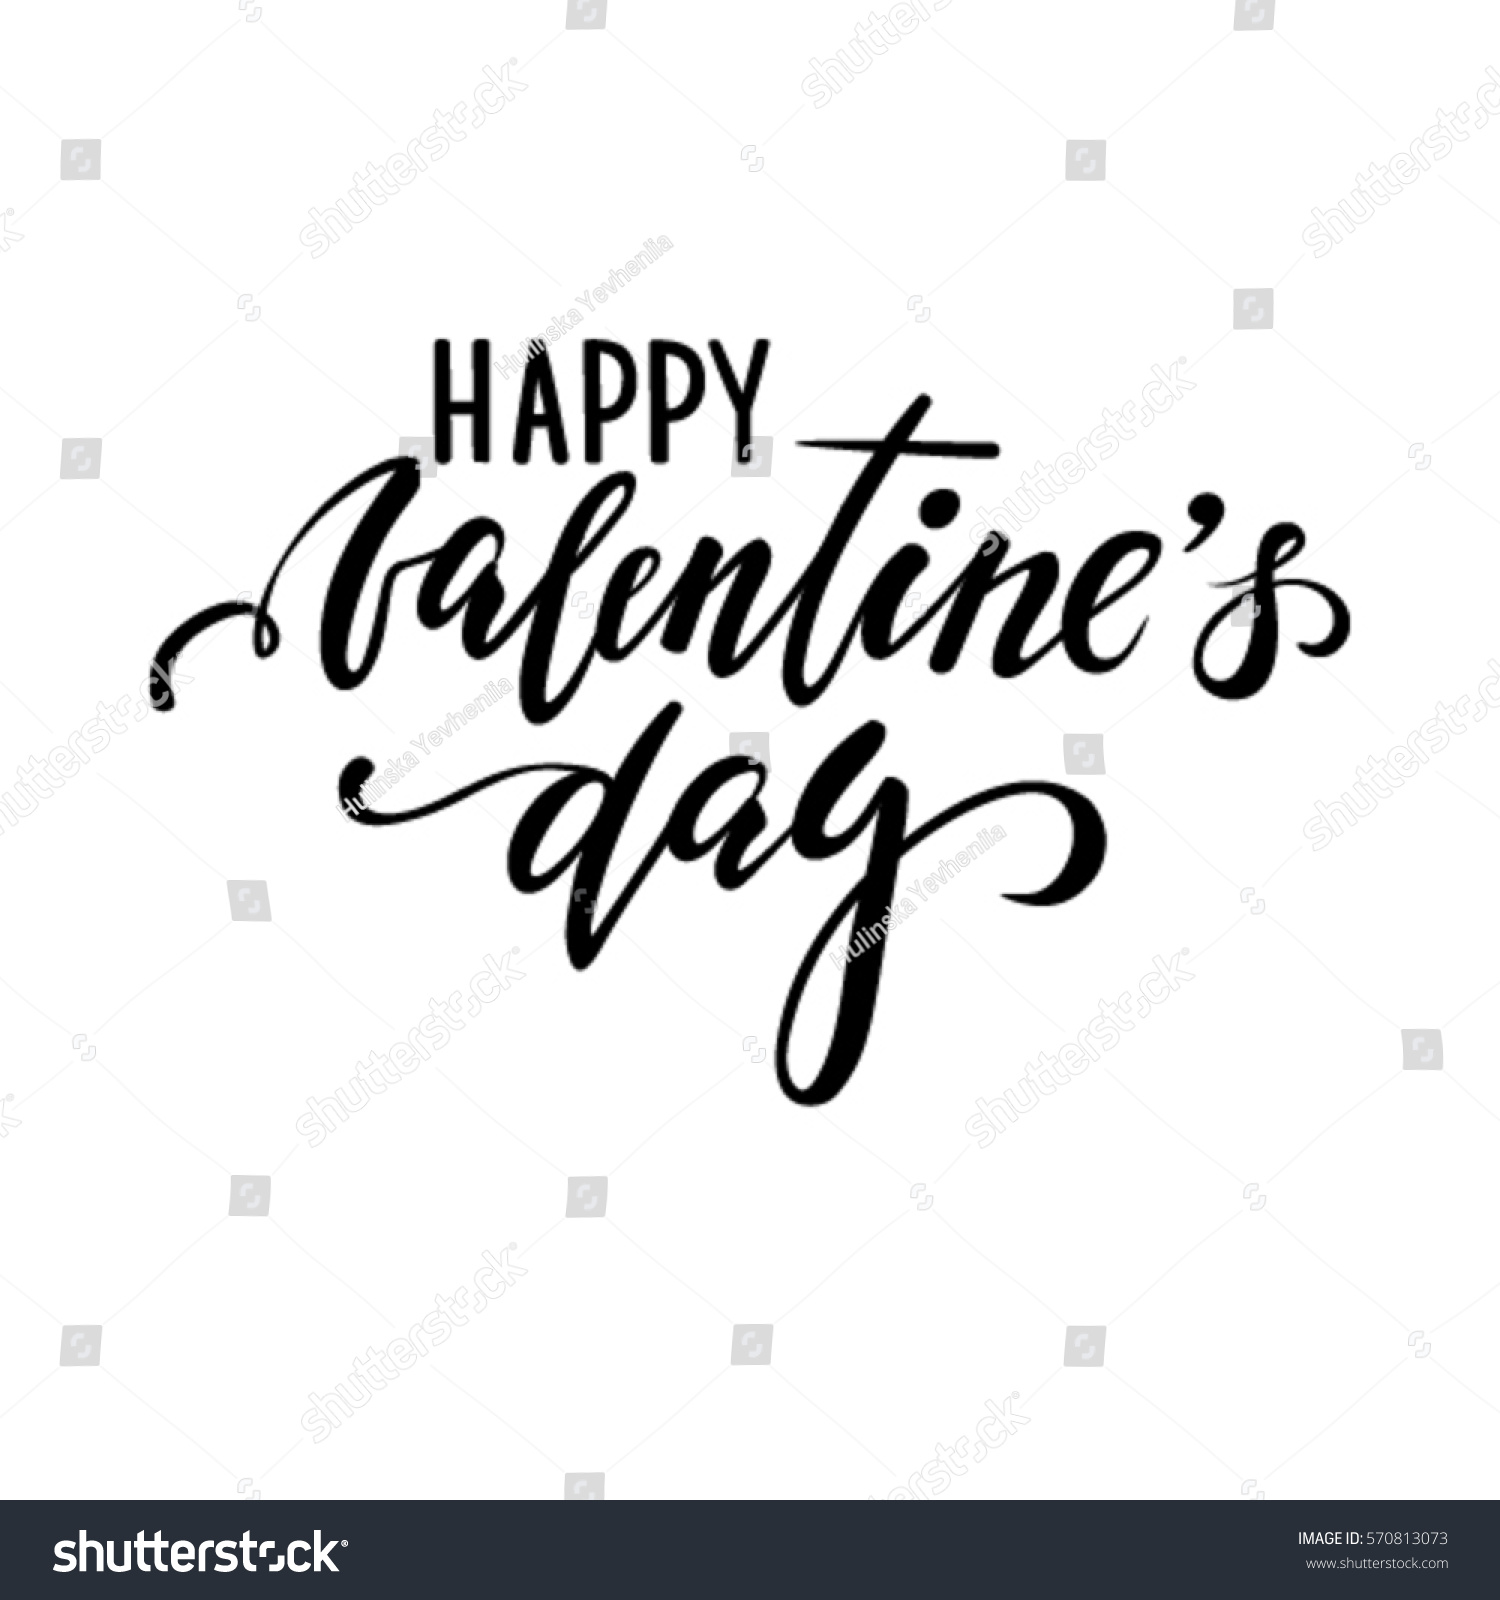 Happy Valentines Day Hand Drawn Creative Stock Vector Royalty Free